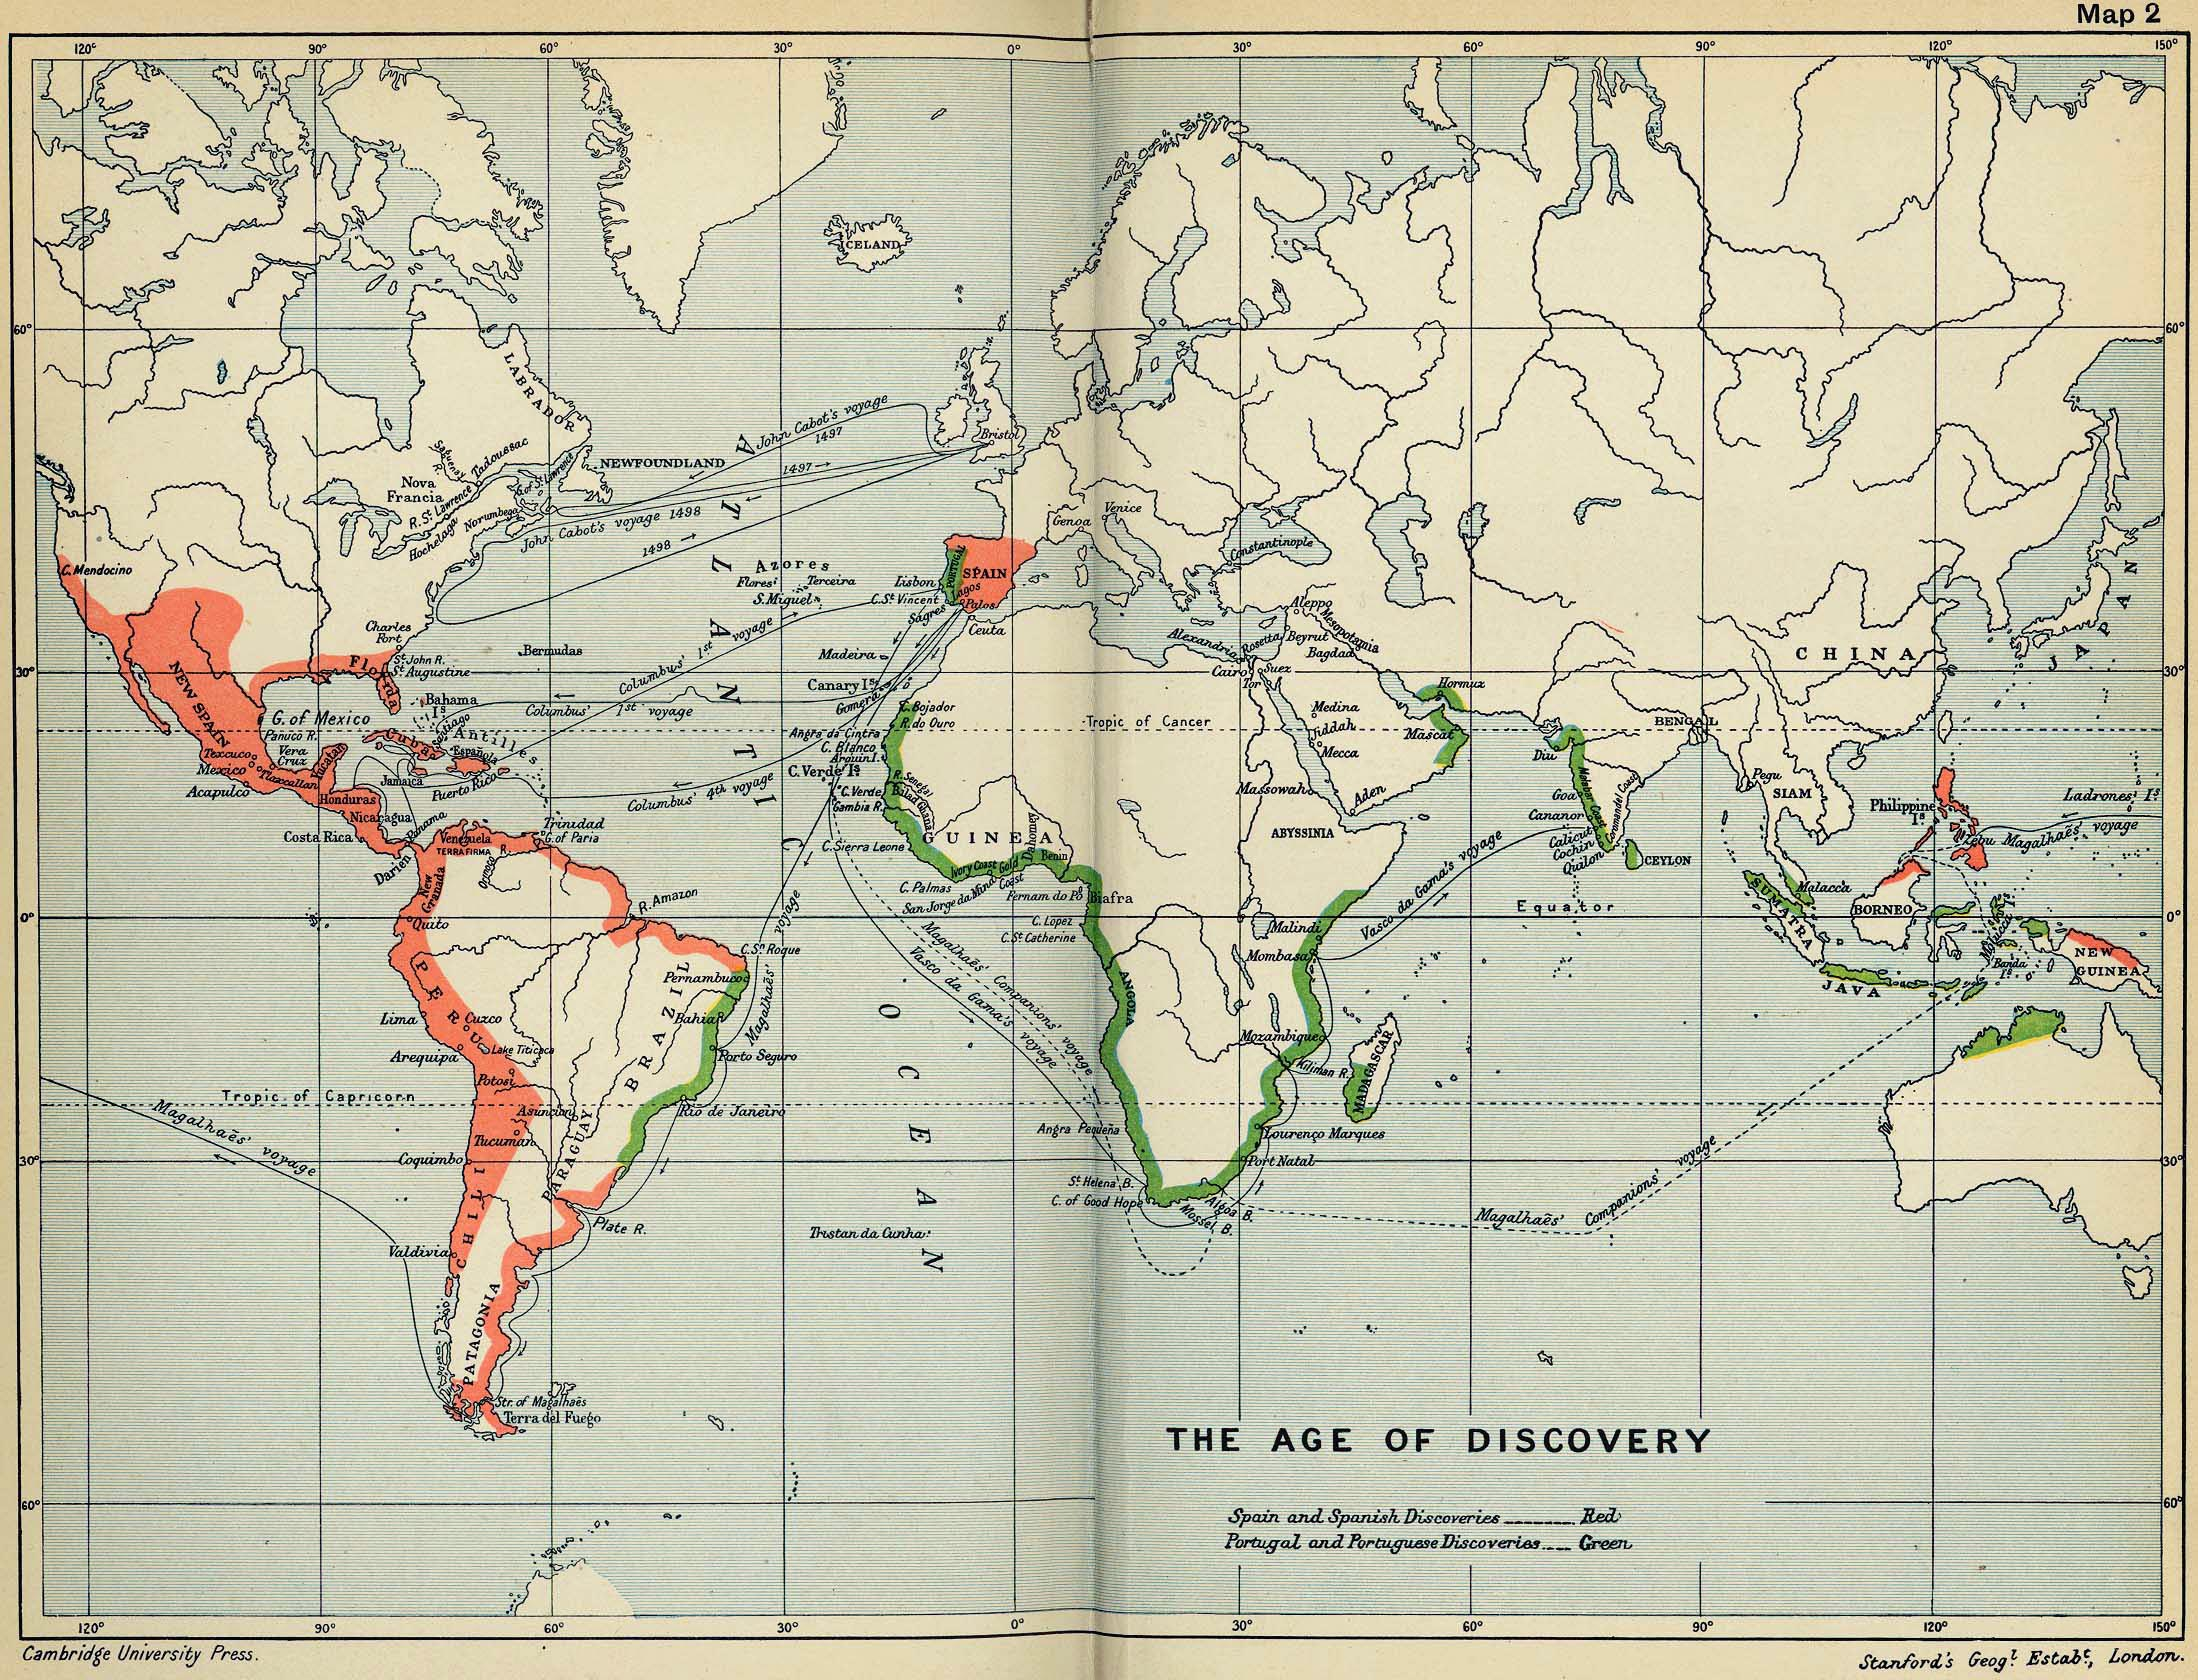 The British Empire in Asia